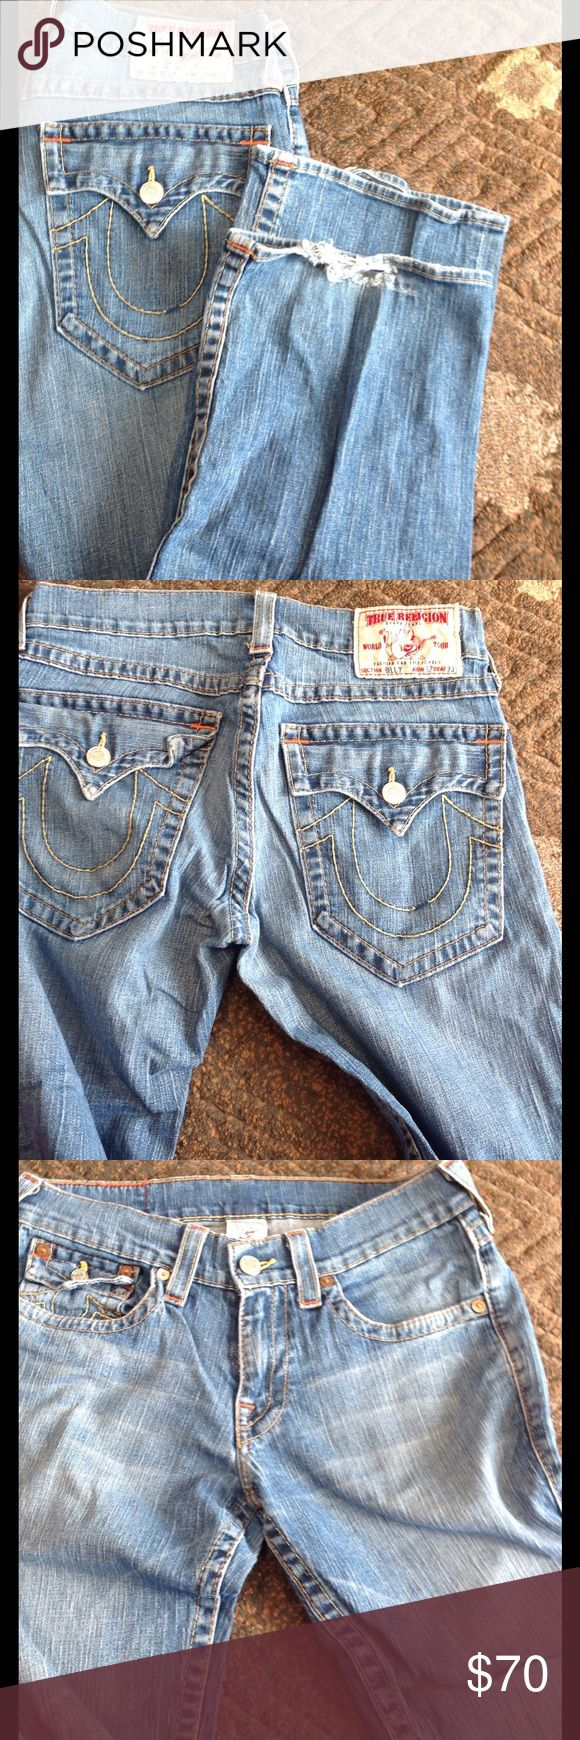 True religion men's jeans Light denim jeans with some wear on bottoms. 32x33 True Religion Jeans Bootcut